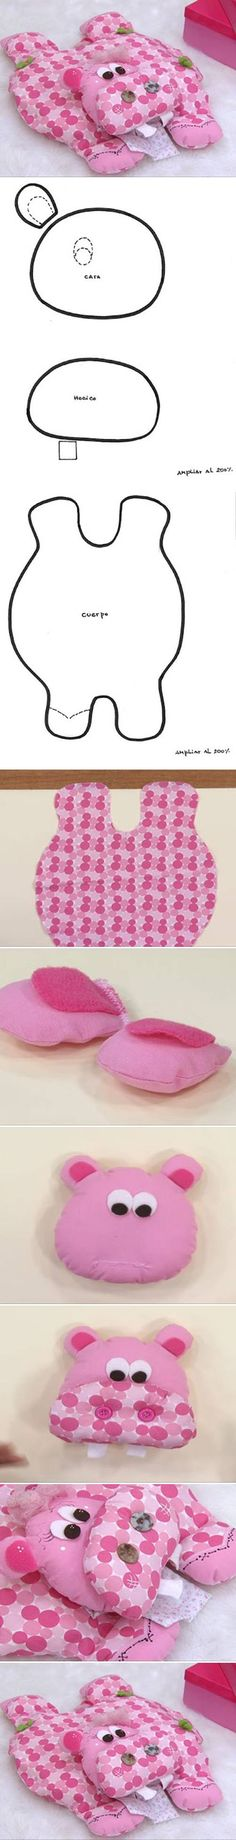 DIY Hippo Pillow diy sew crafts diy crafts sewing kids crafts how to tutorial sewing tutorials sewing crafts crafts for kids Baby Crafts, Felt Crafts, Fabric Crafts, Sewing Crafts, Sewing Projects, Diy Projects, Animal Projects, Kids Crafts, Sewing Pillows